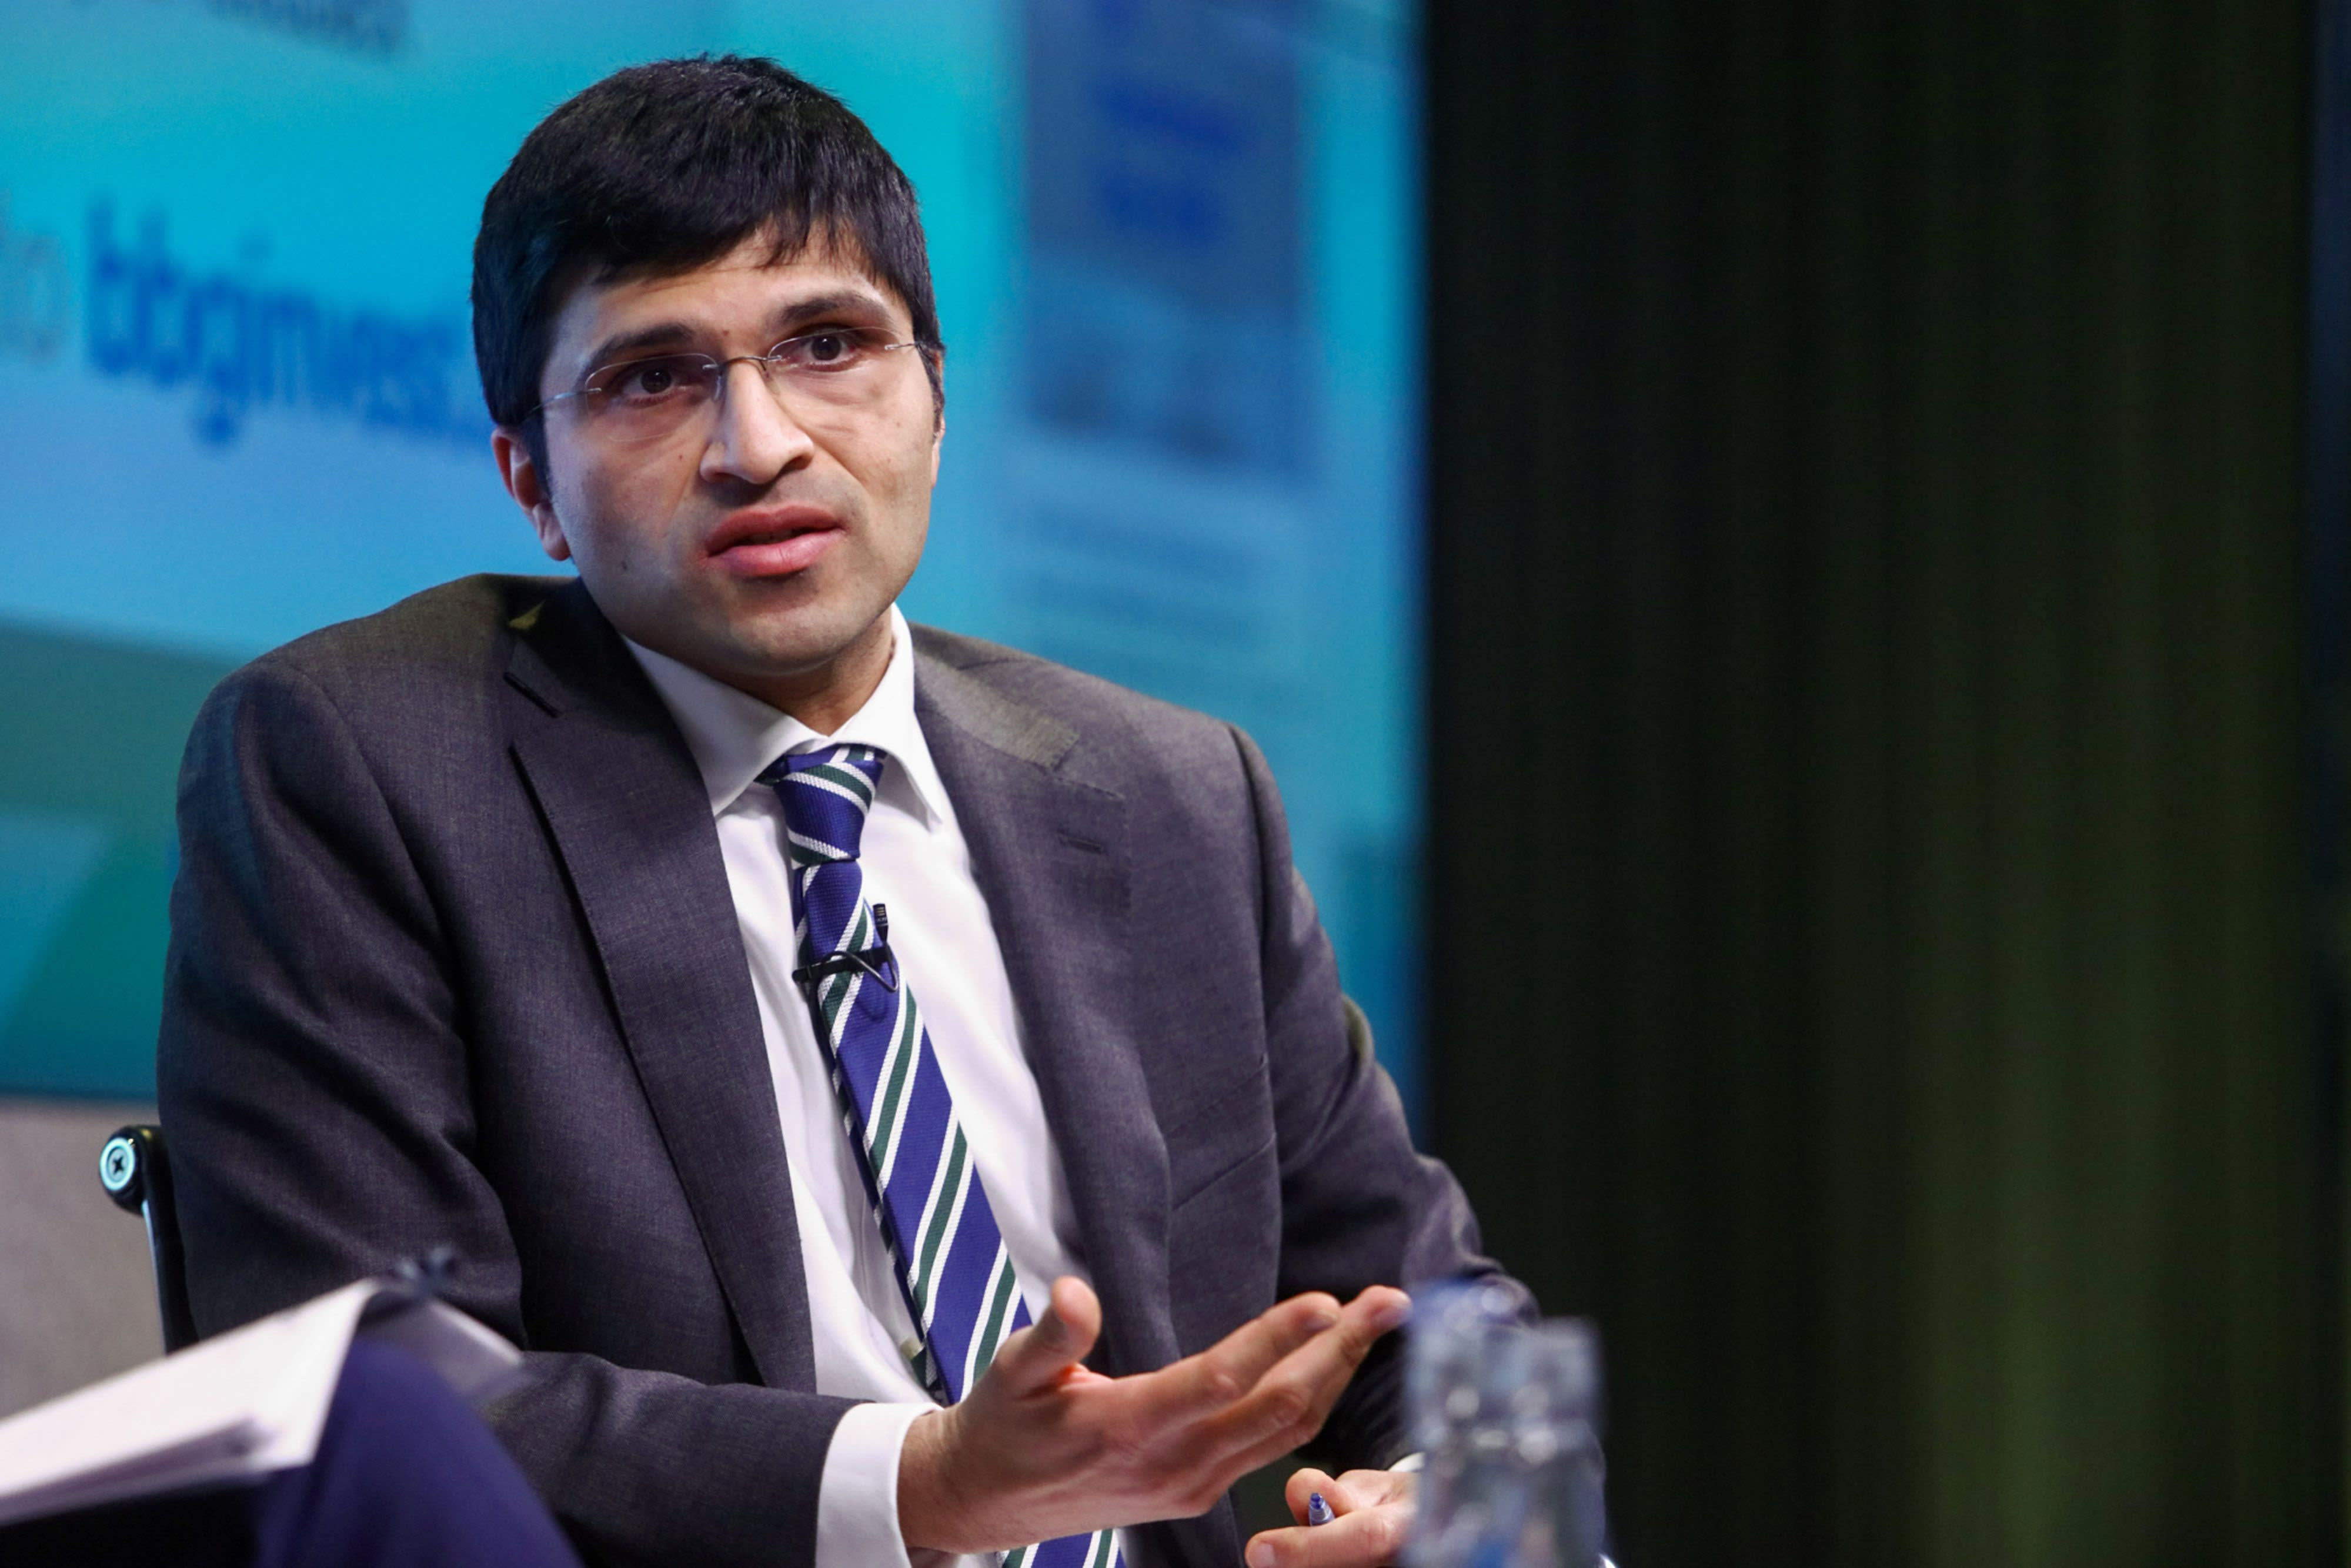 Who is Nikhil Rathi, the next FCA chief executive?